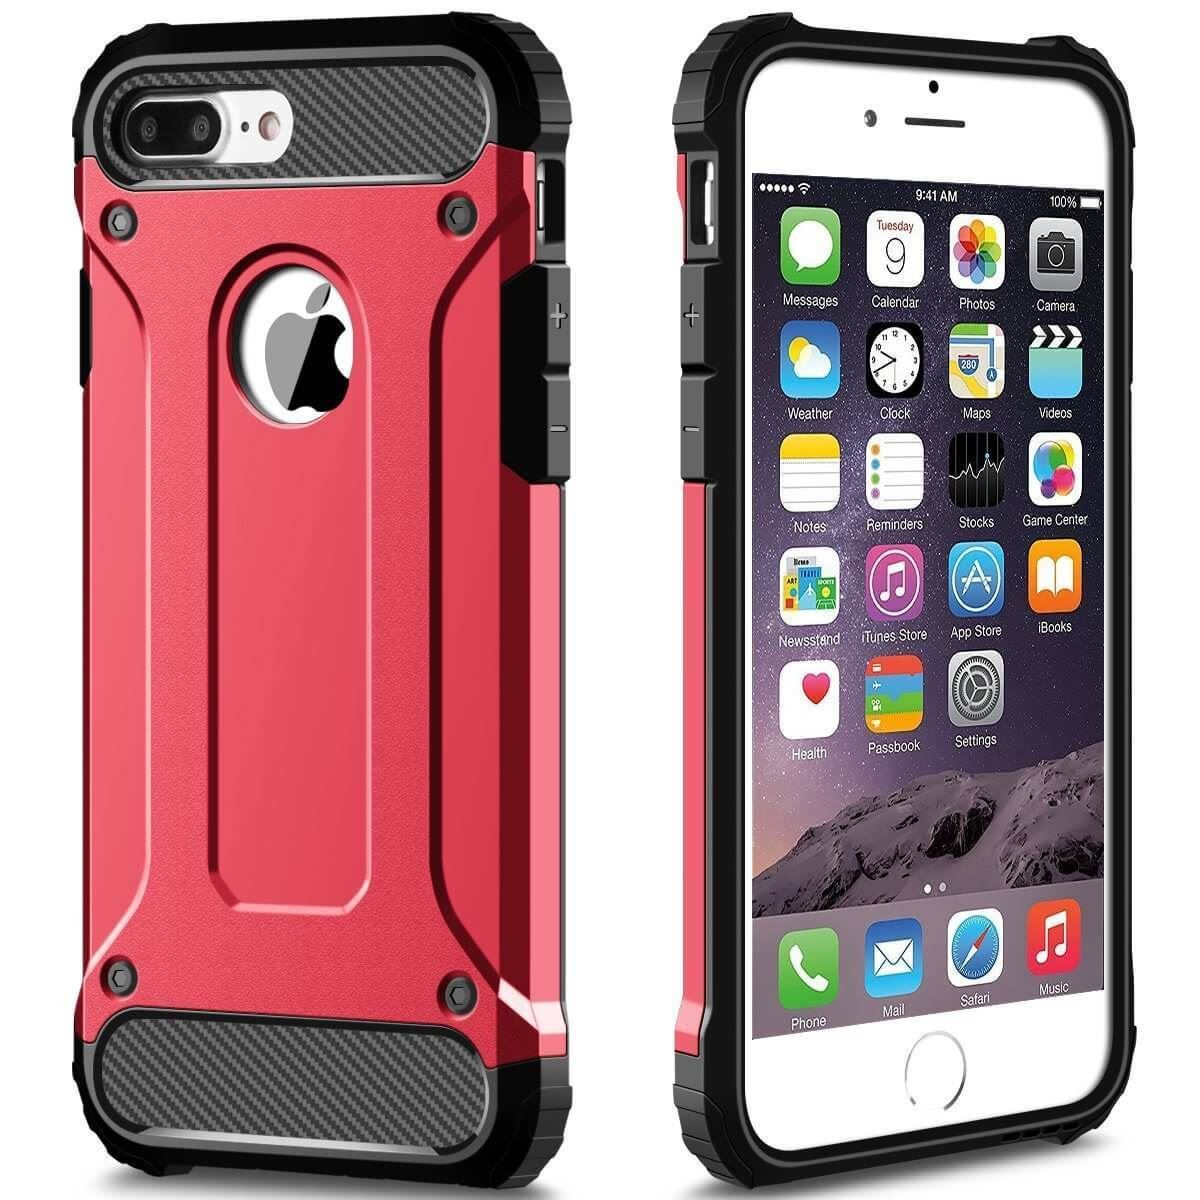 Hybrid-Armor-Shockproof-Rugged-Bumper-Case-For-Apple-iPhone-10-X-8-7-Plus-6s-5s miniature 47